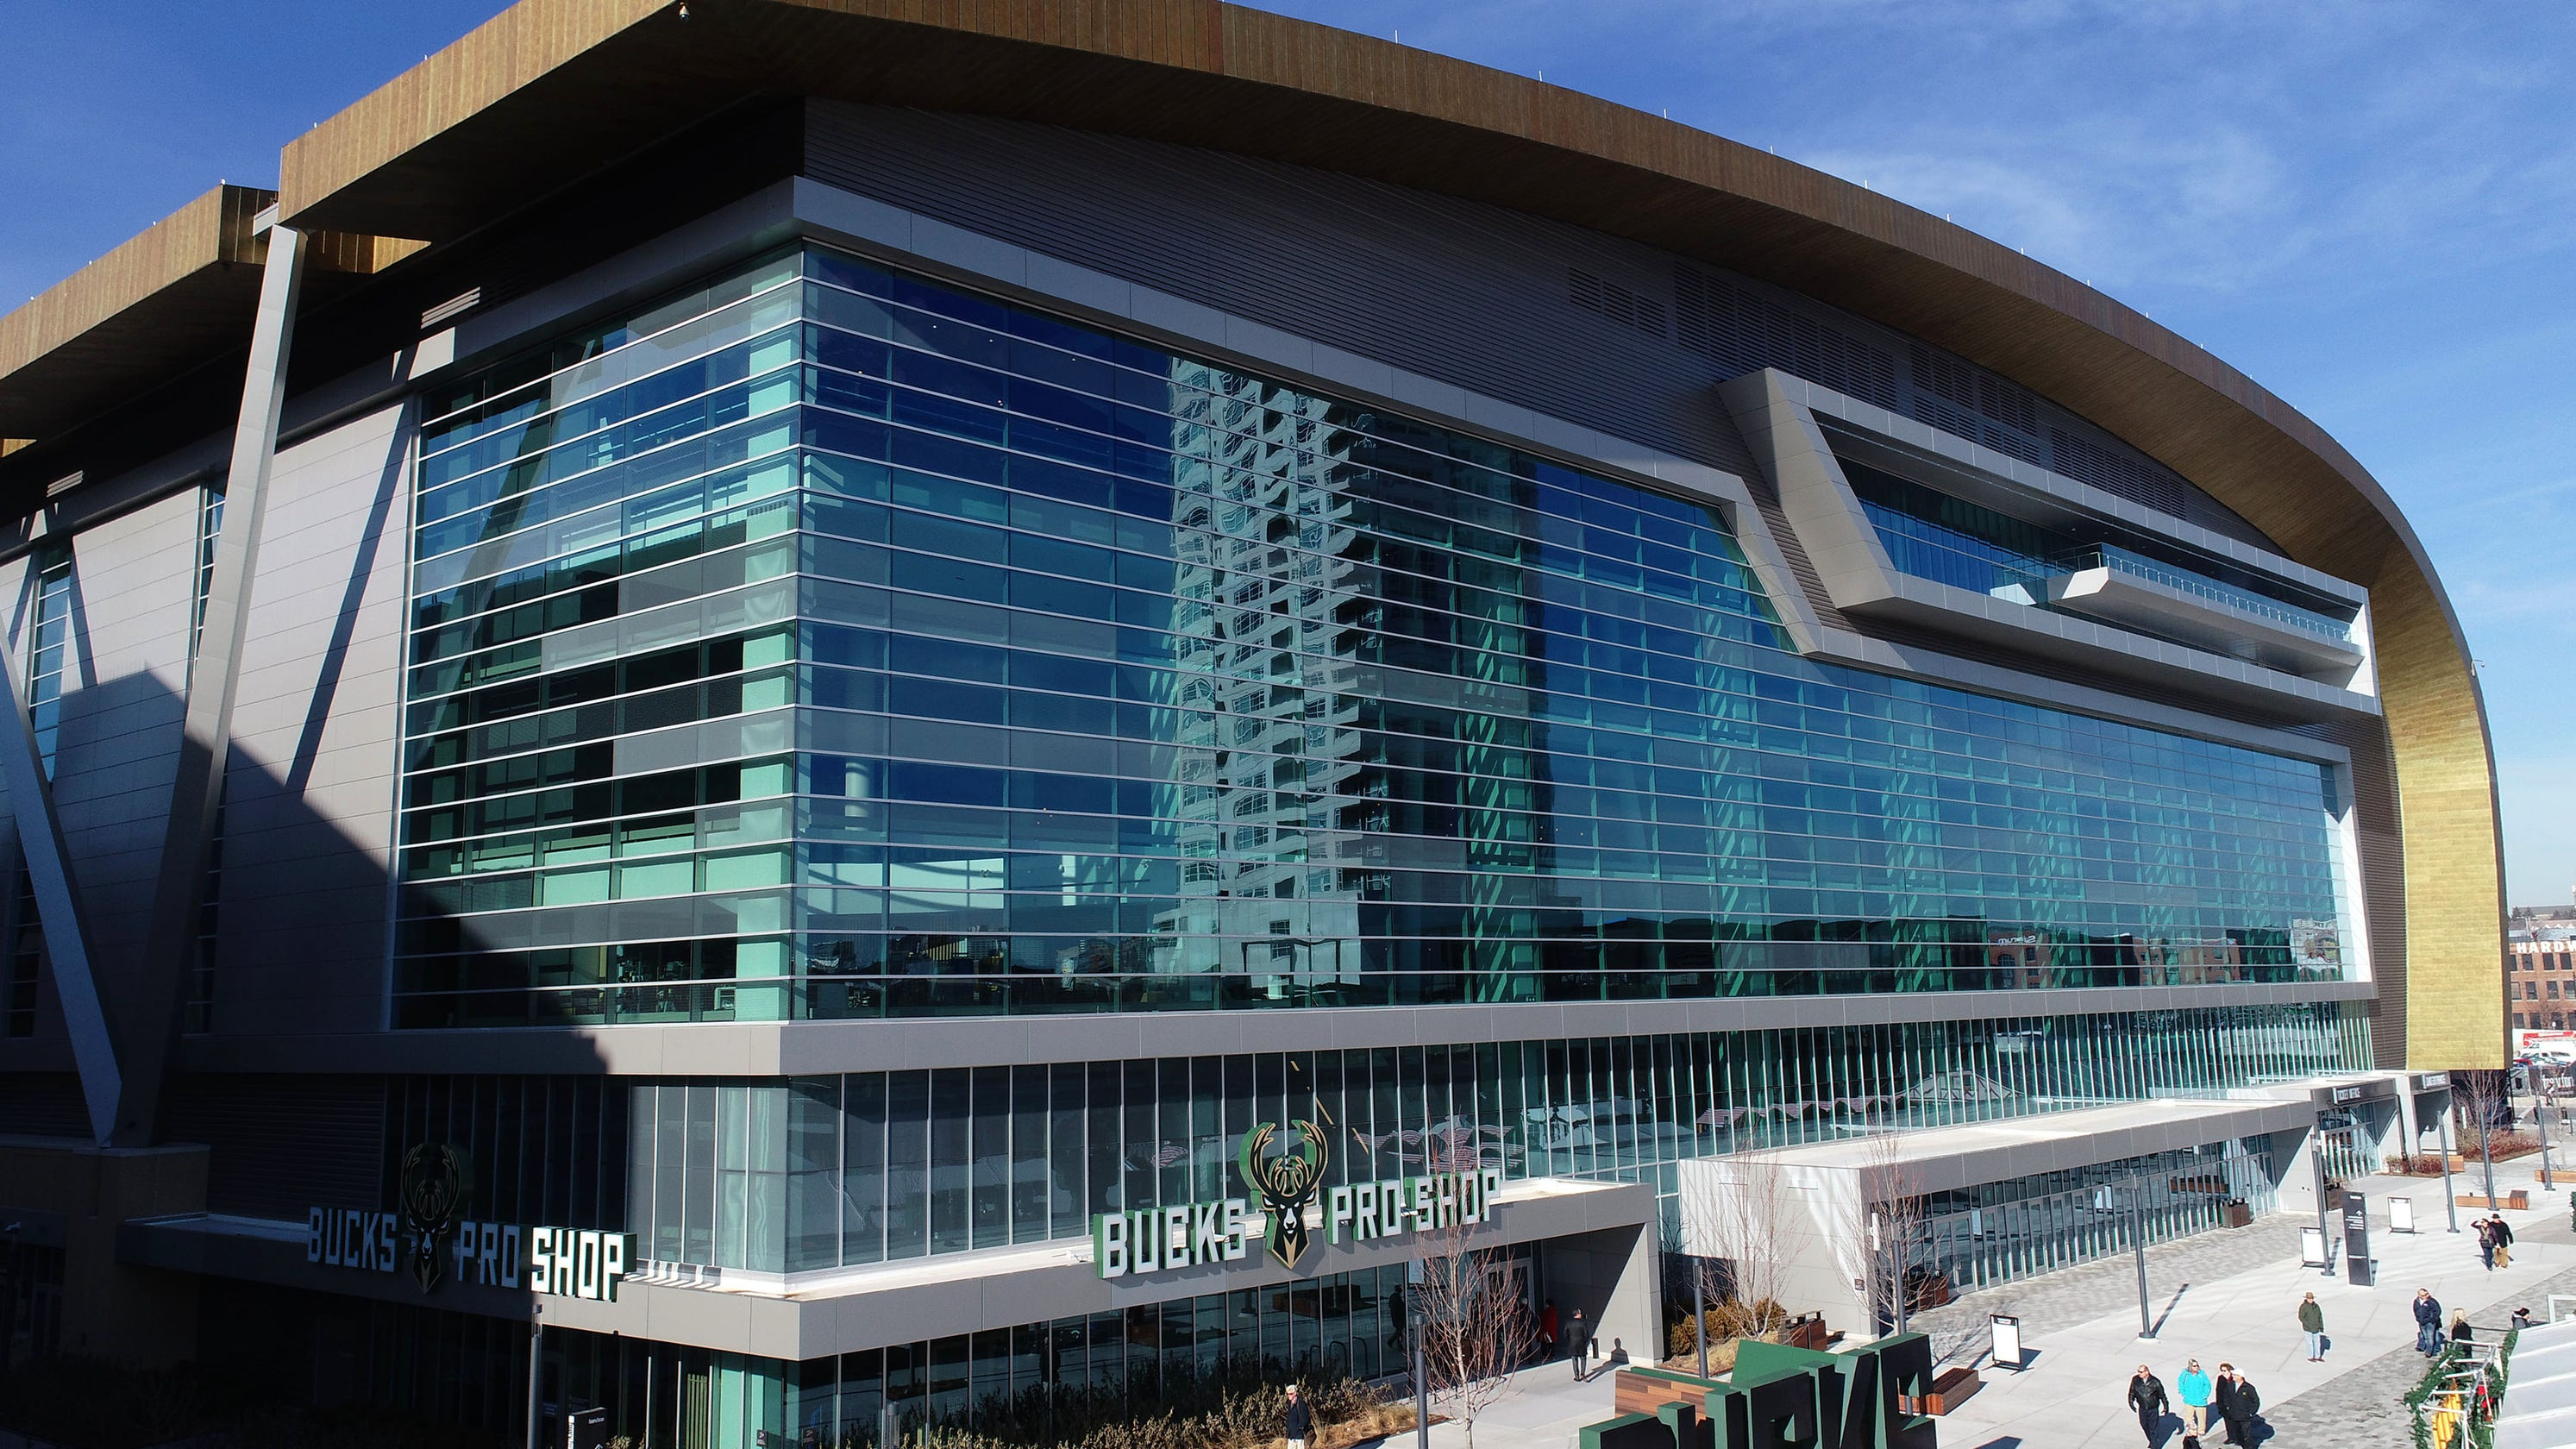 Before the pandemic, Milwaukee's Fiserv Forum was one of the top-grossing concert venues in the world